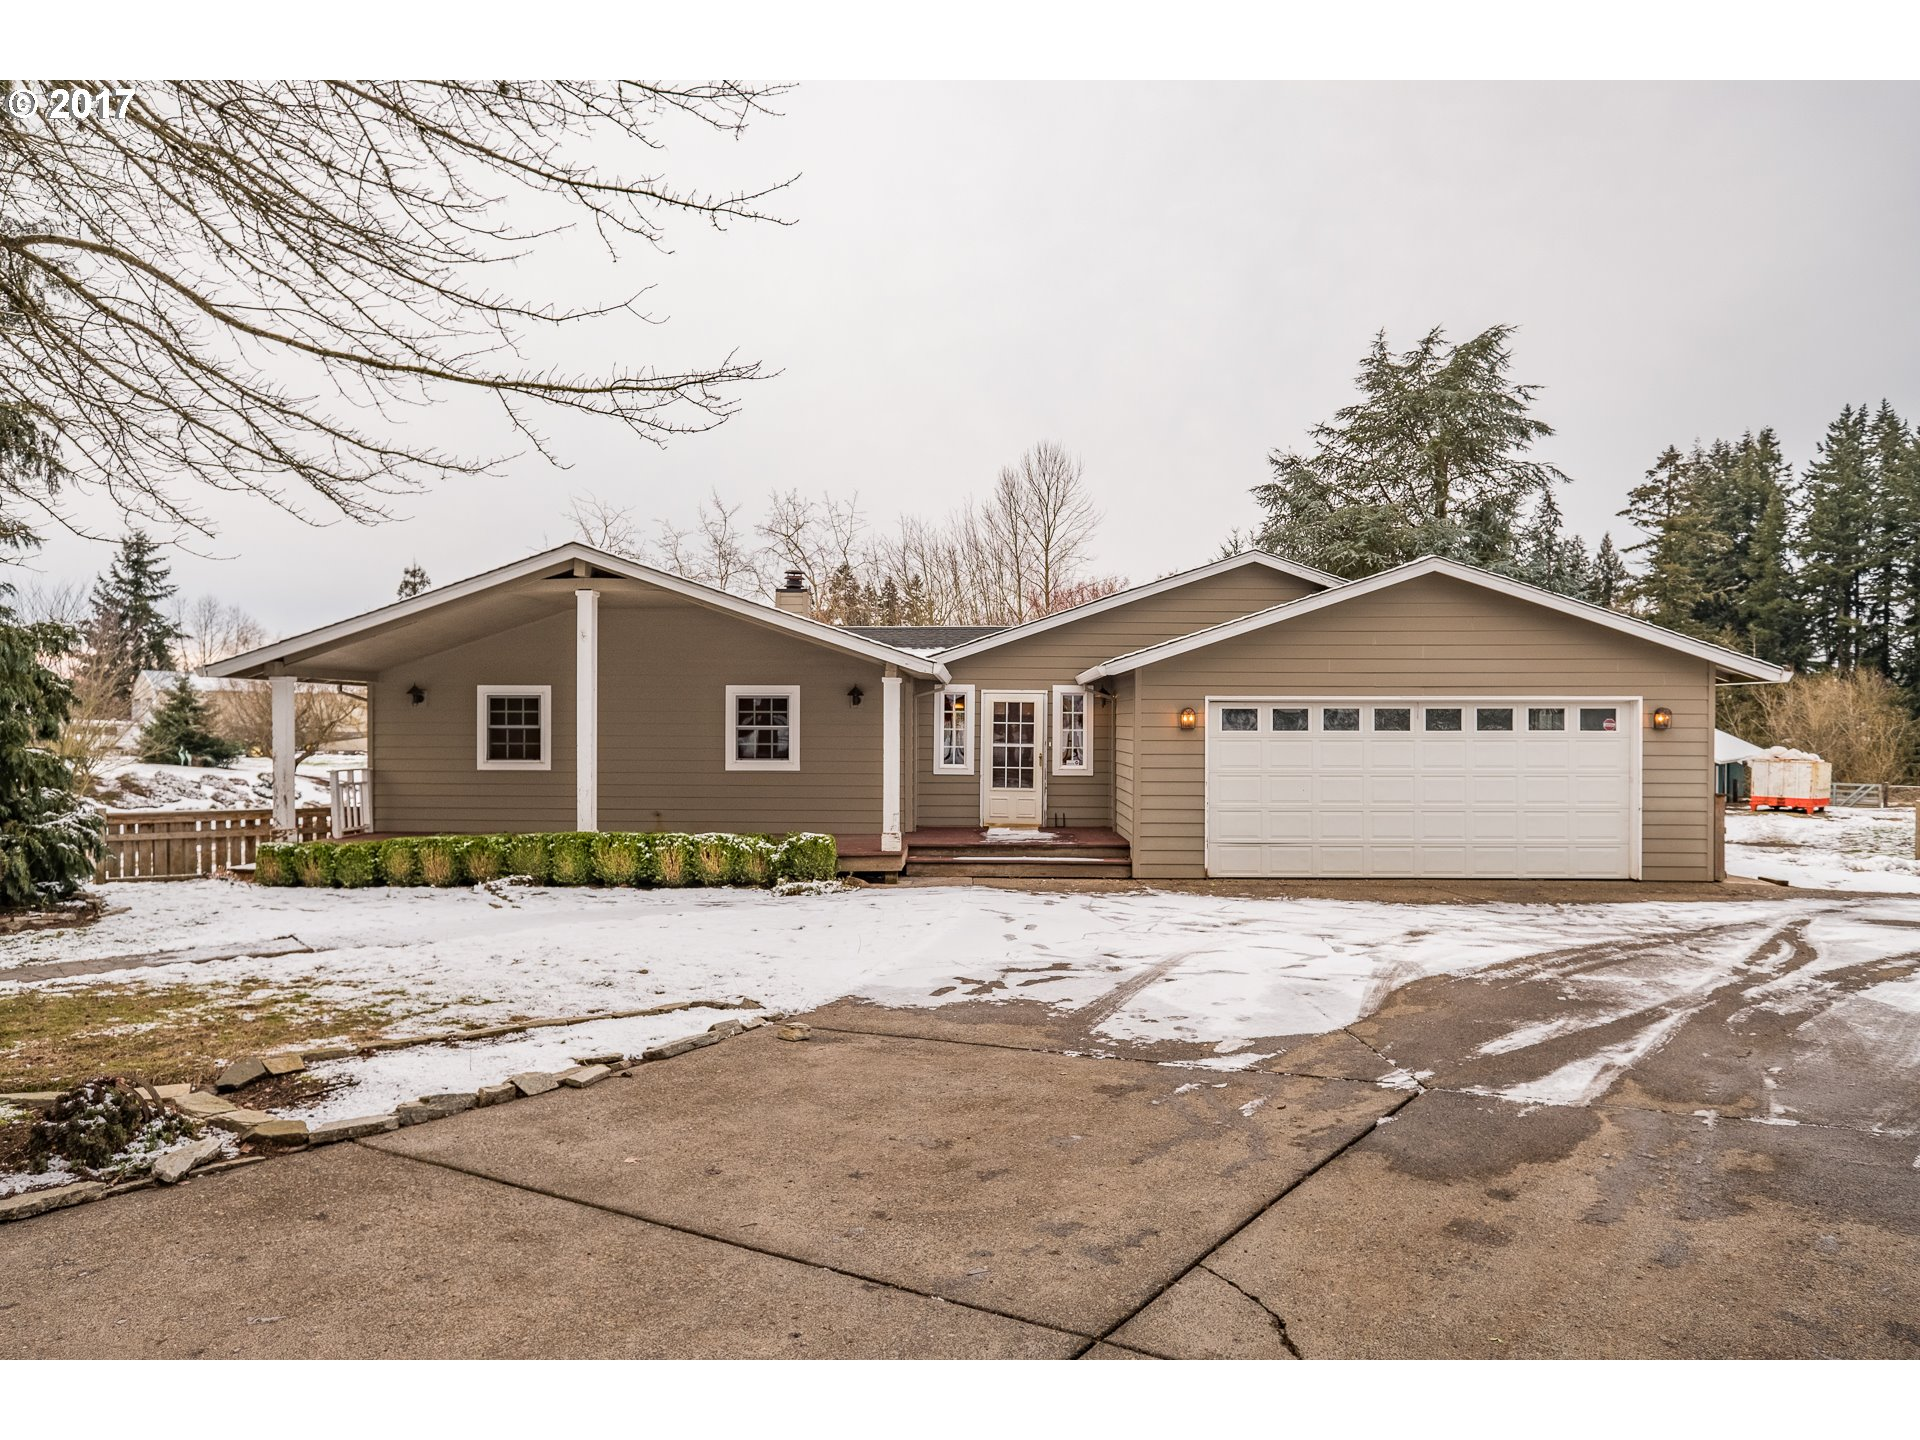 30640 S ARROW CT, Canby OR 97013